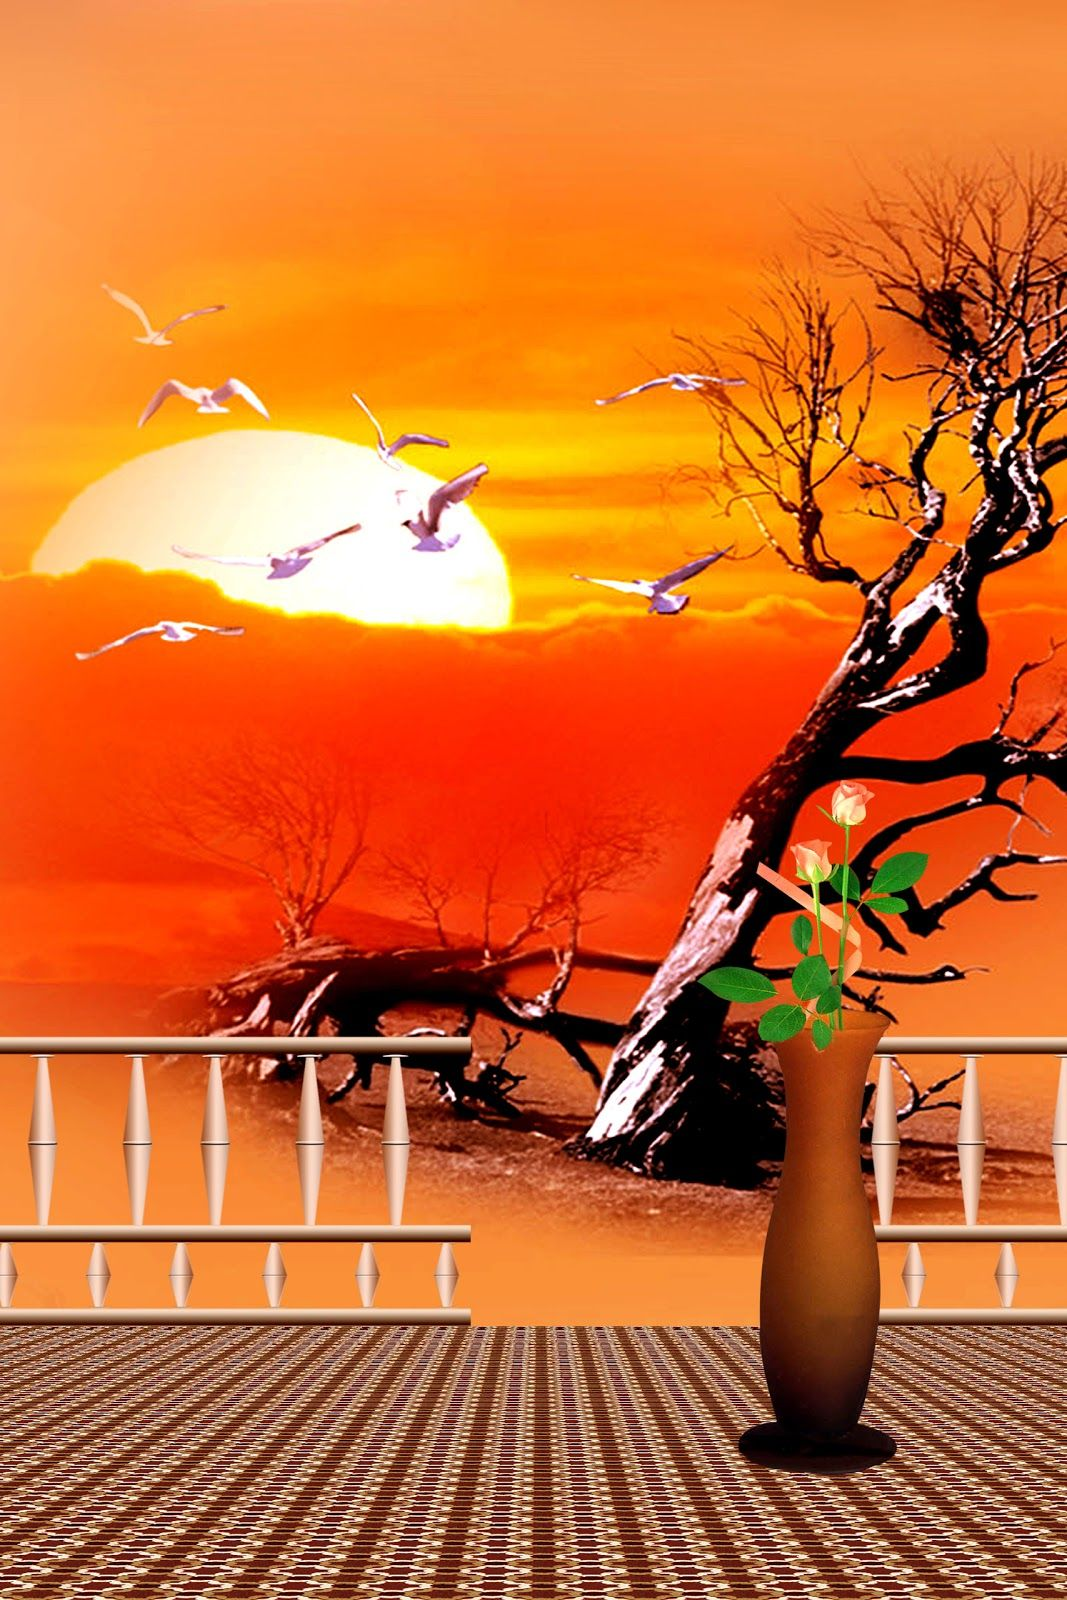 background images free download